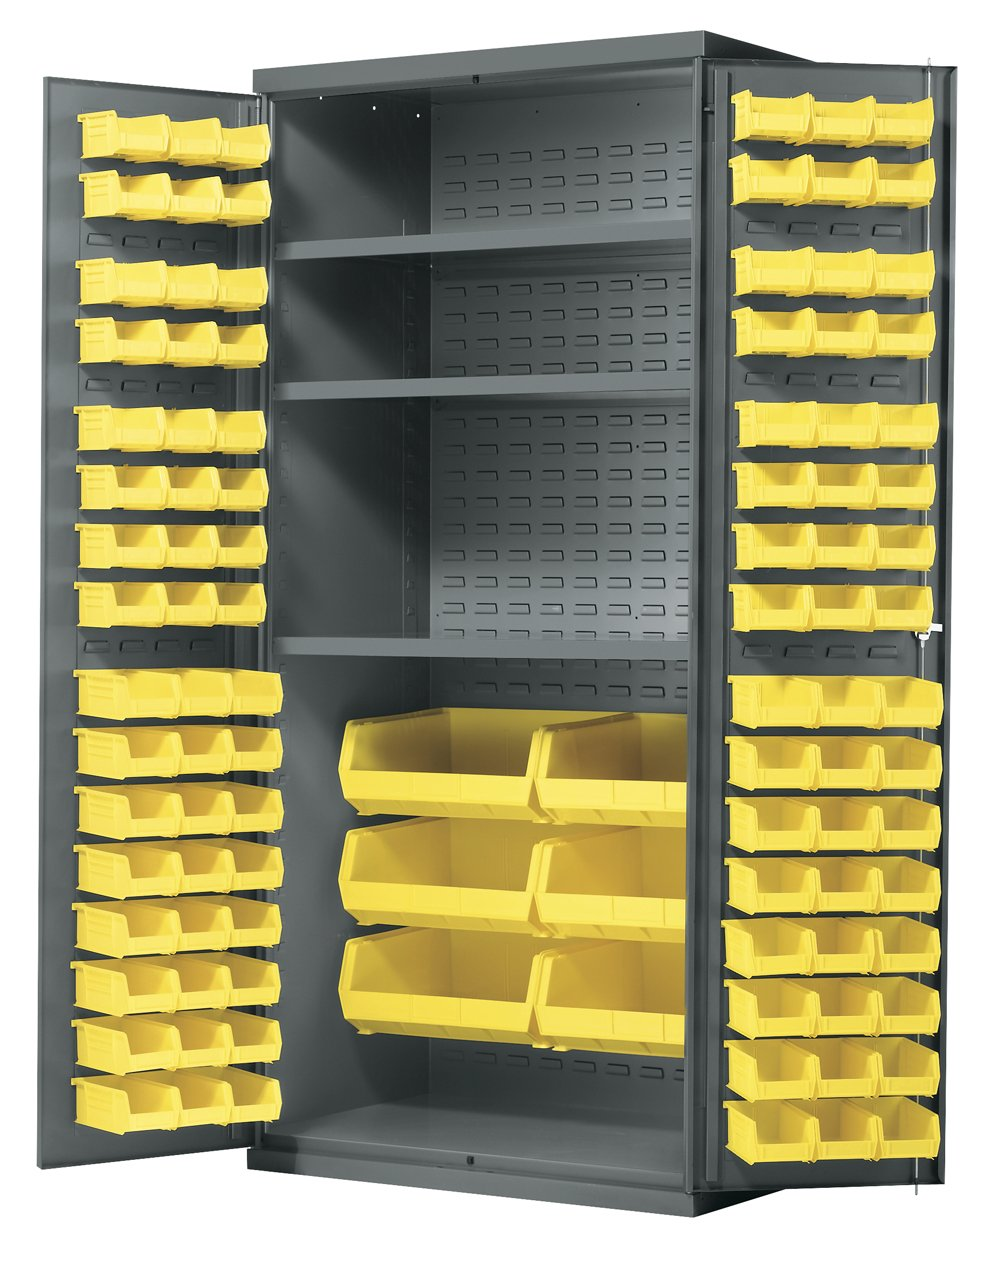 Akro-Mils AC3624 Y3AS Steel Storage Cabinet with Shelves, Louvered Panels and 102 Yellow AkroBins, 36'' W x 24'' D x 78'' H